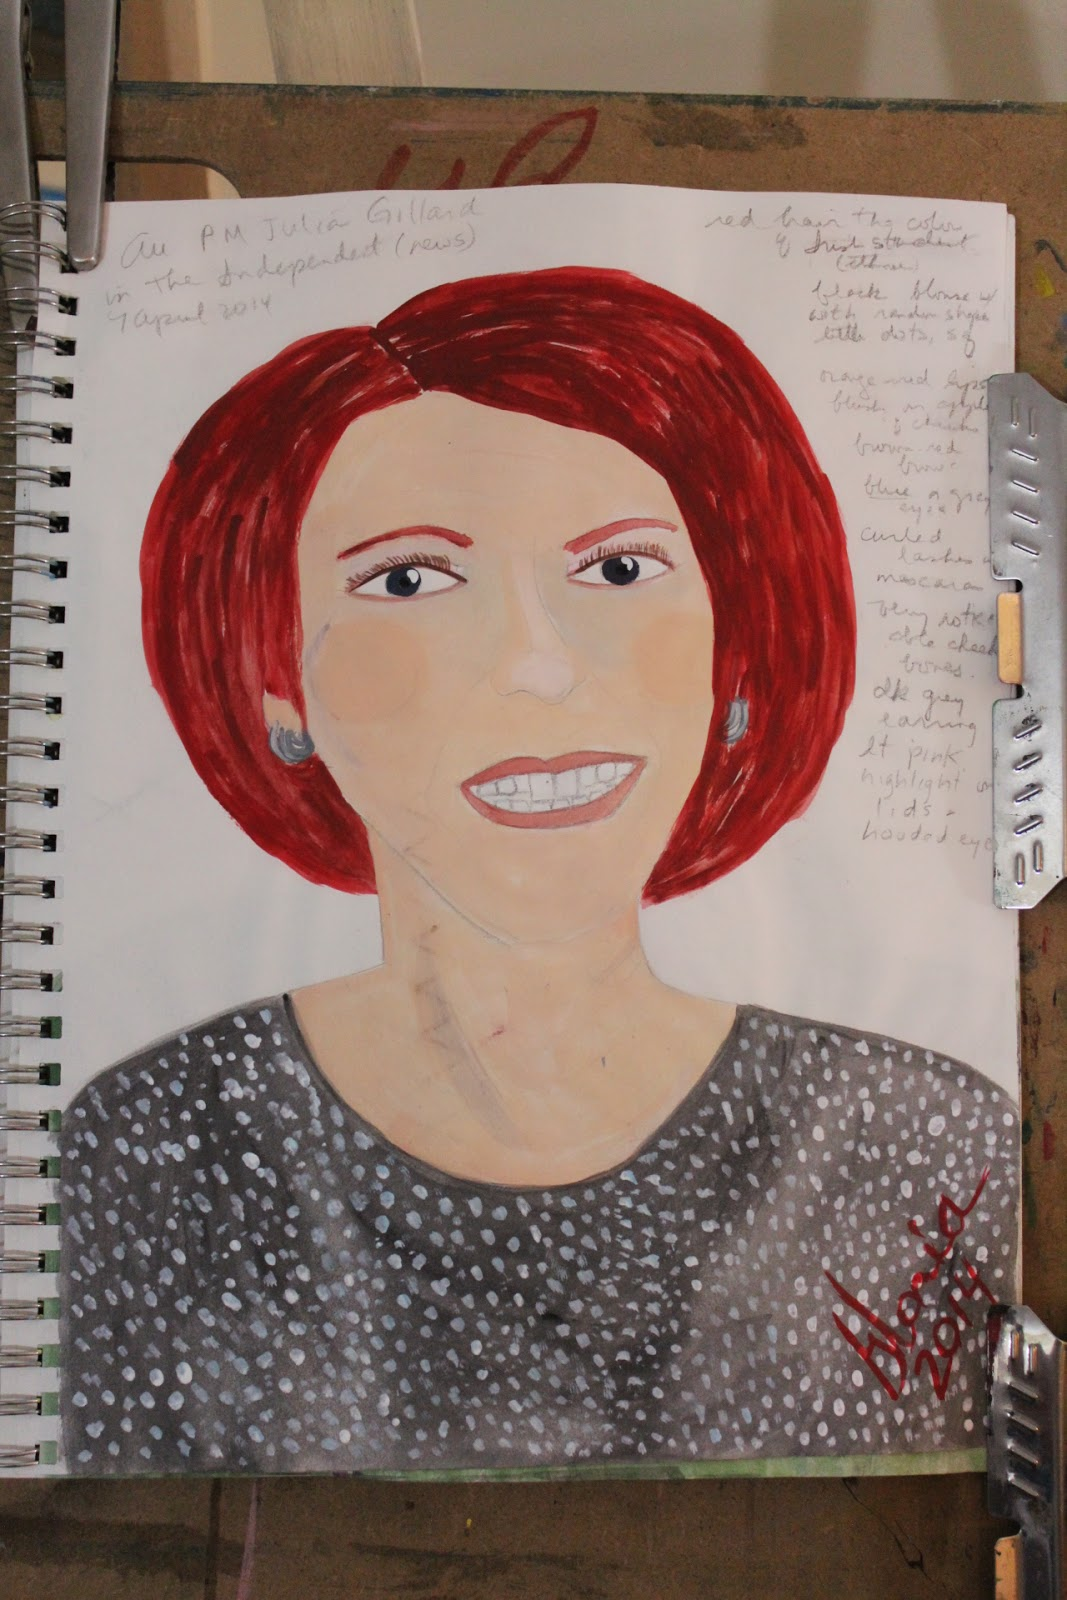 AU PM Julia Gillard sketch by Gloria Poole; 9-Apr-2014; acrylics